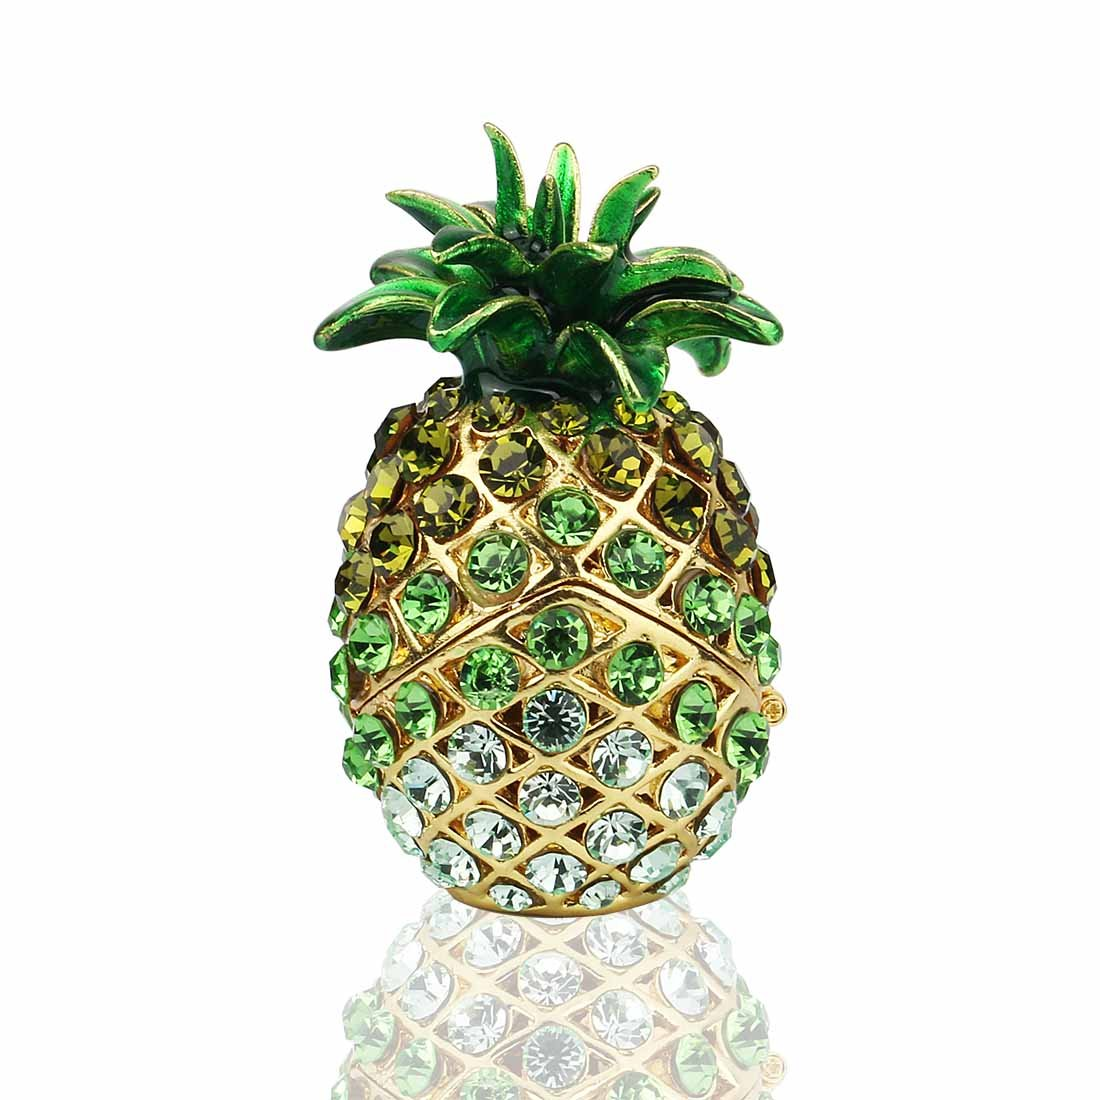 YUFENG Pineapple Hinged Trinket Box For Gifts Hand-painted Patterns Trinket Bejeweled Box Collectible